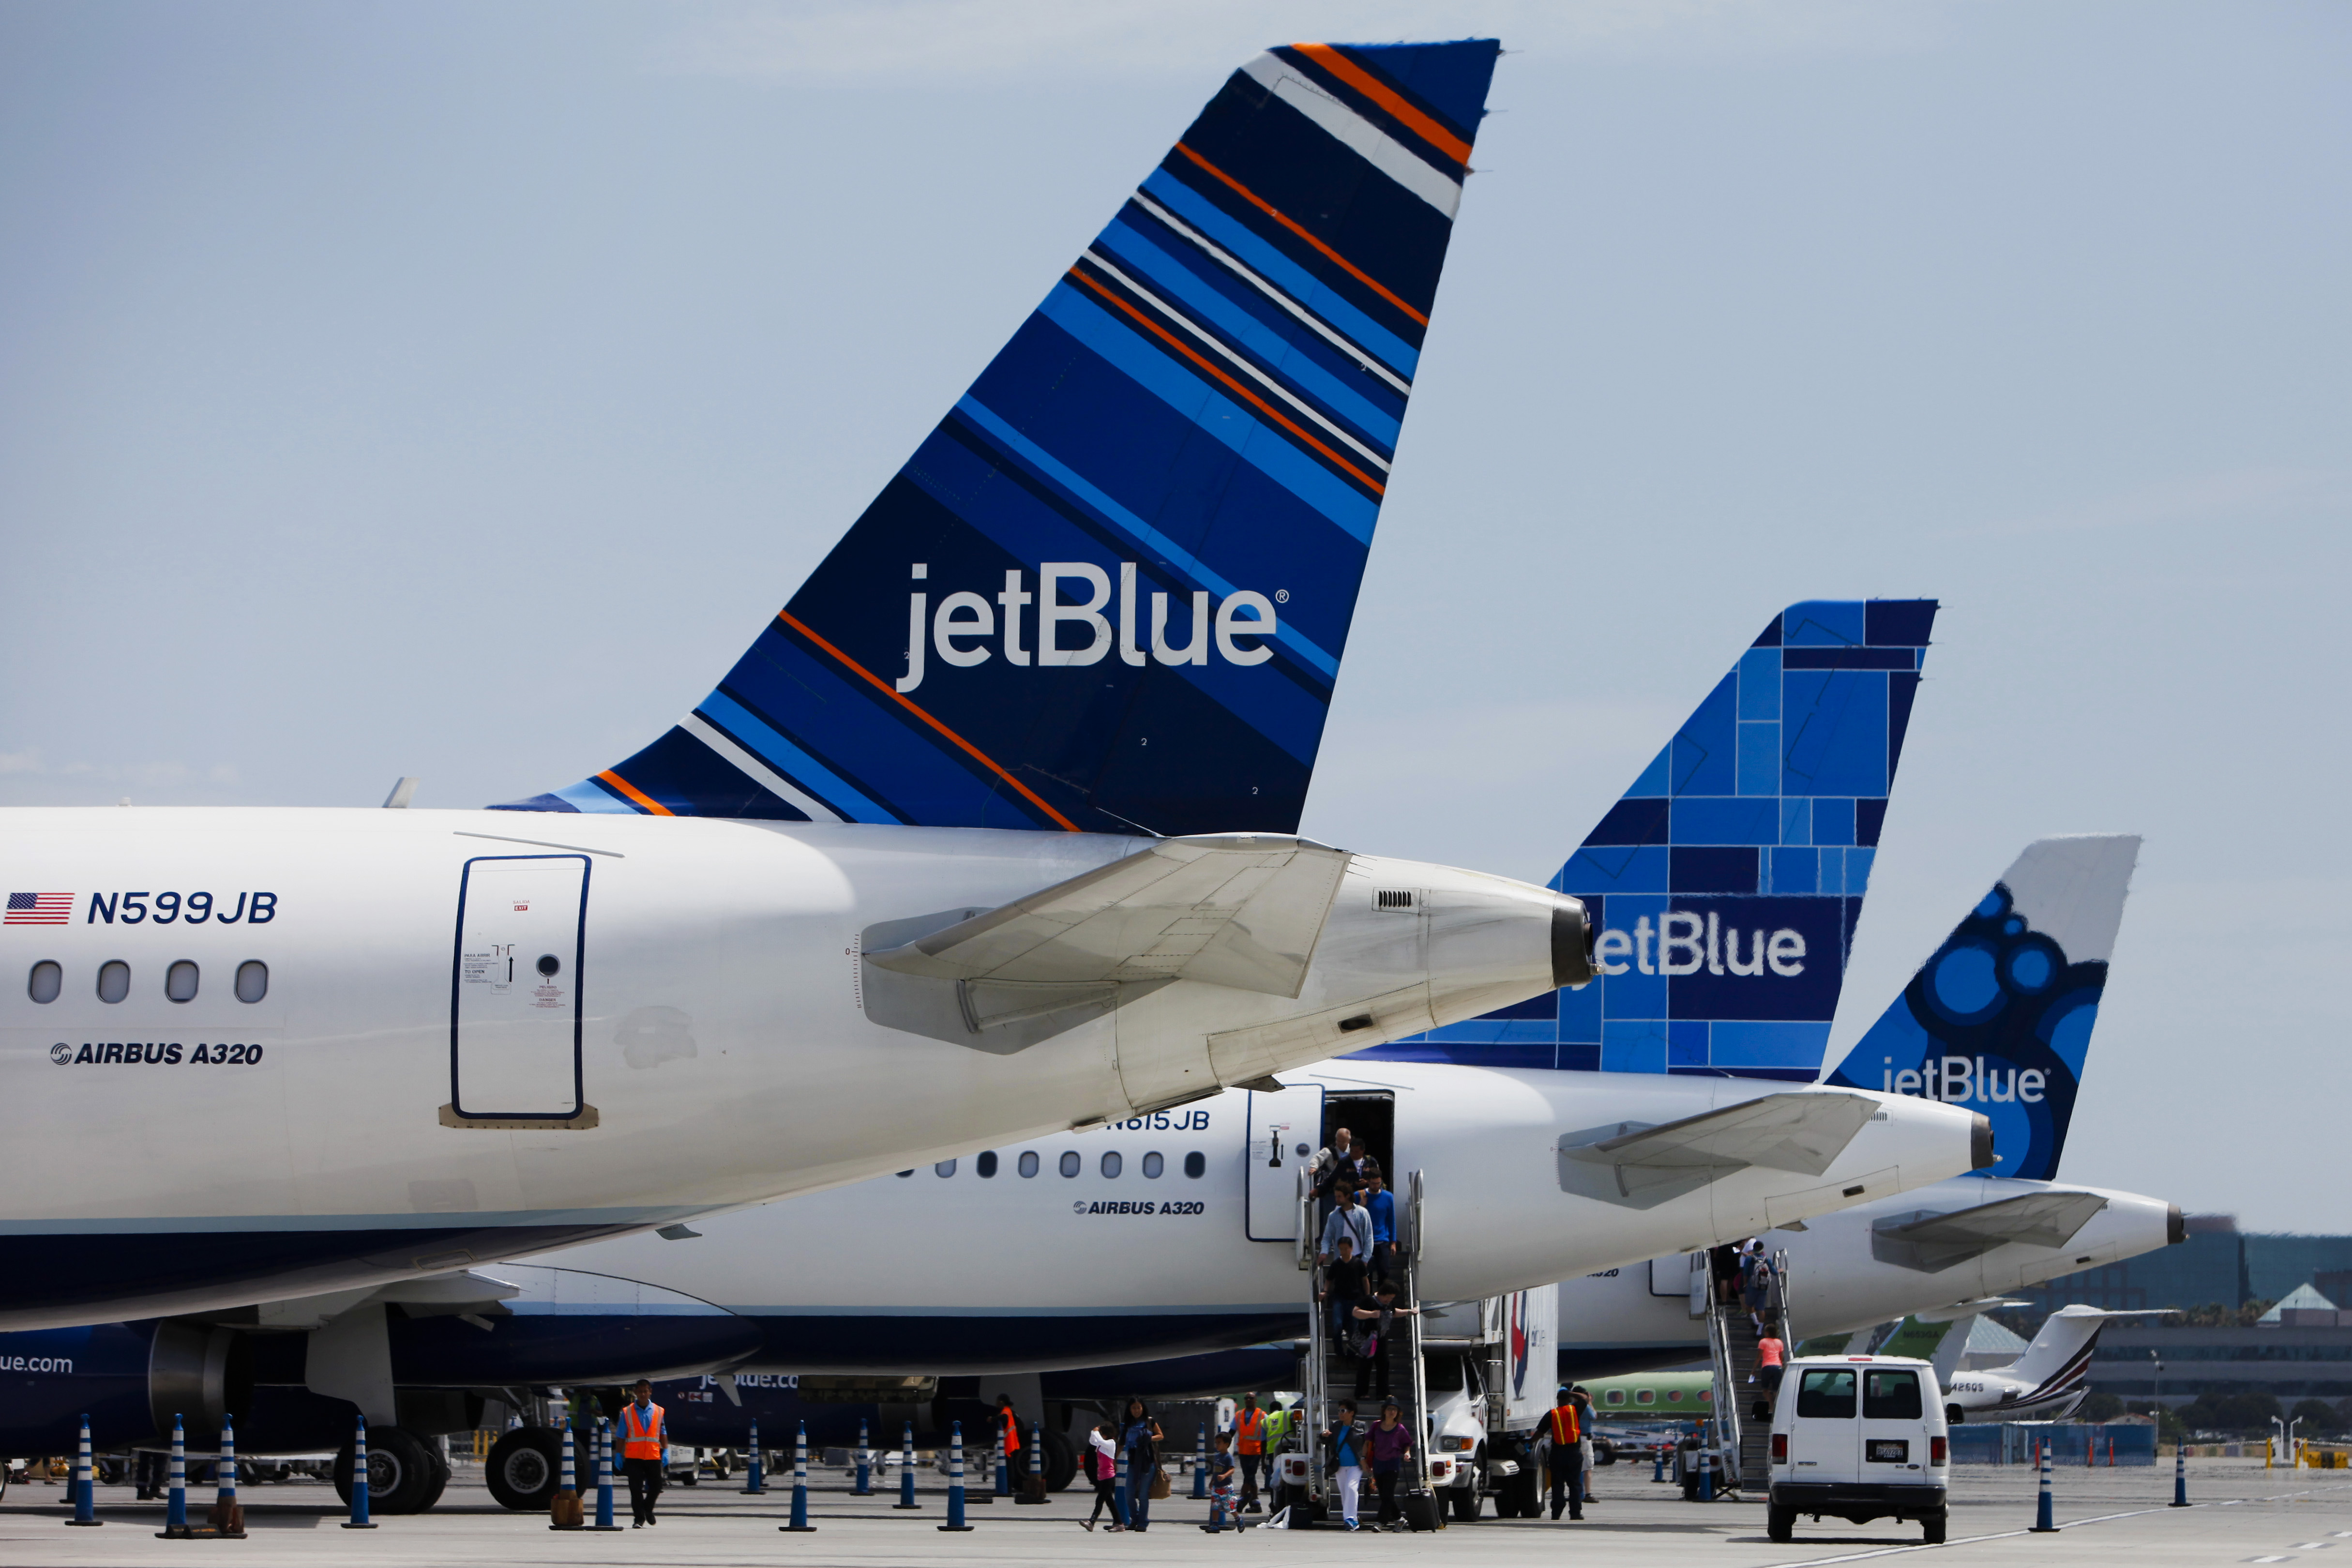 Passengers exit a JetBlue Airways Corp. plane at Long Beach Airport in Long Beach, Calif., on July 22, 2013.